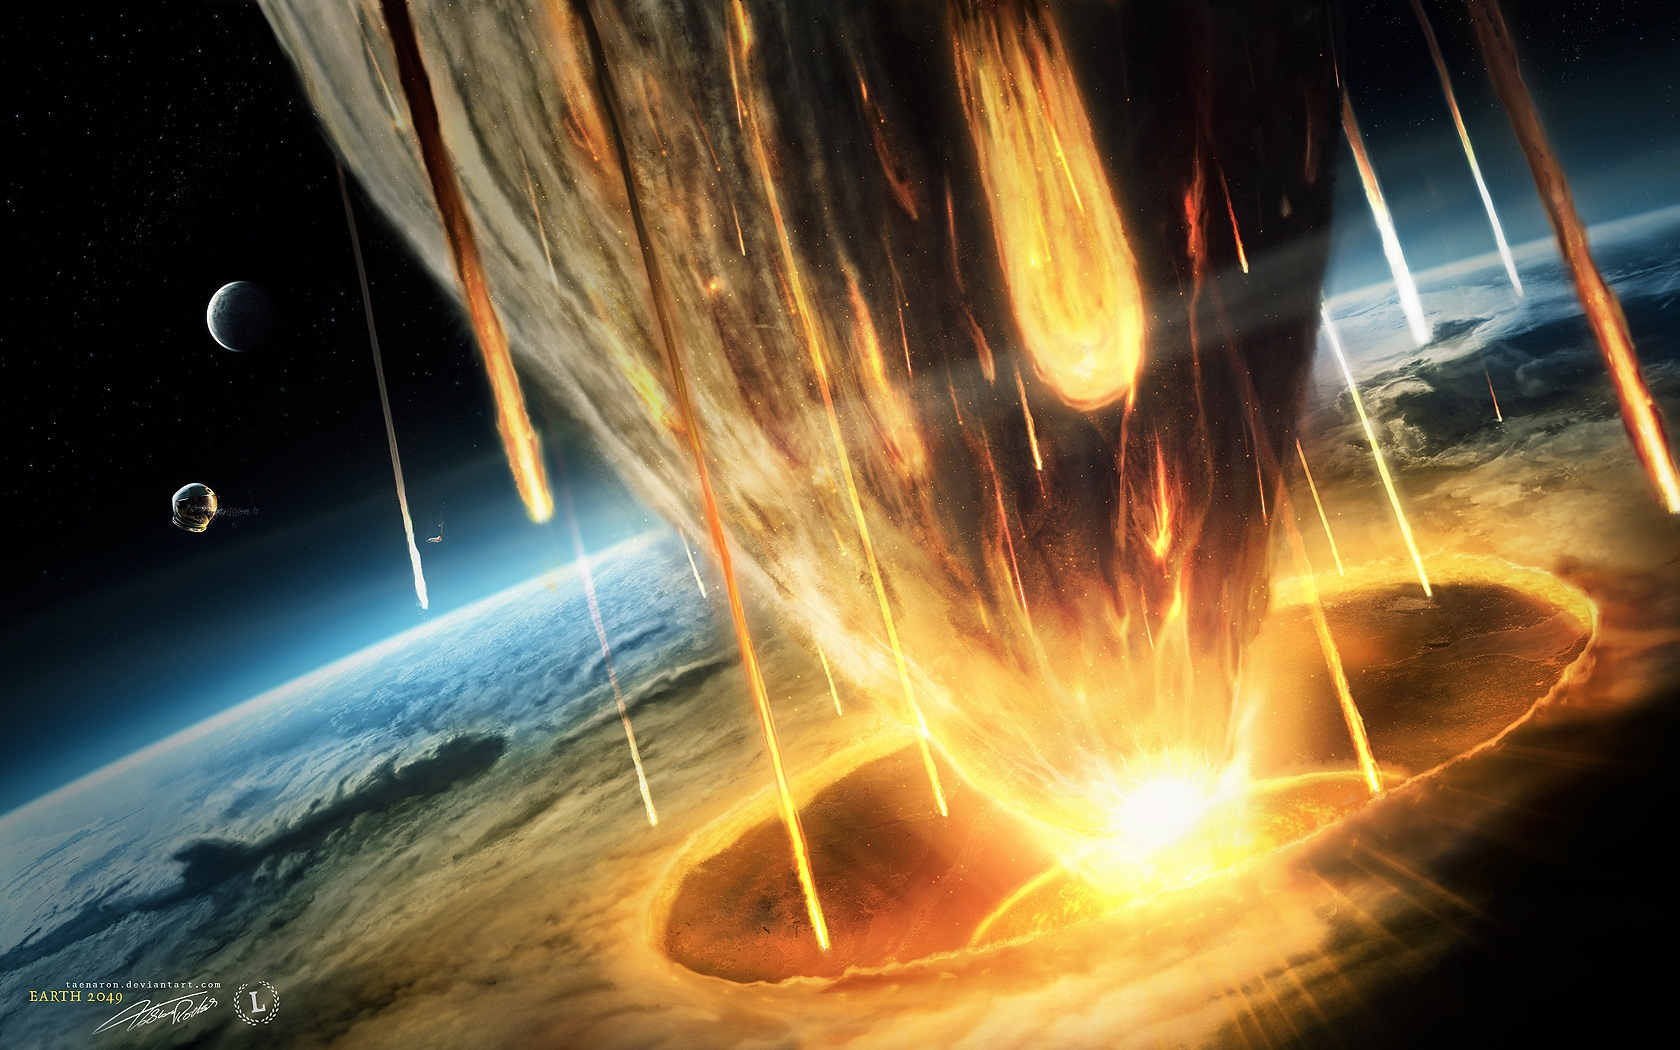 Download Wallpaper 1680x1050 Earth asteroid doomsday HD ...